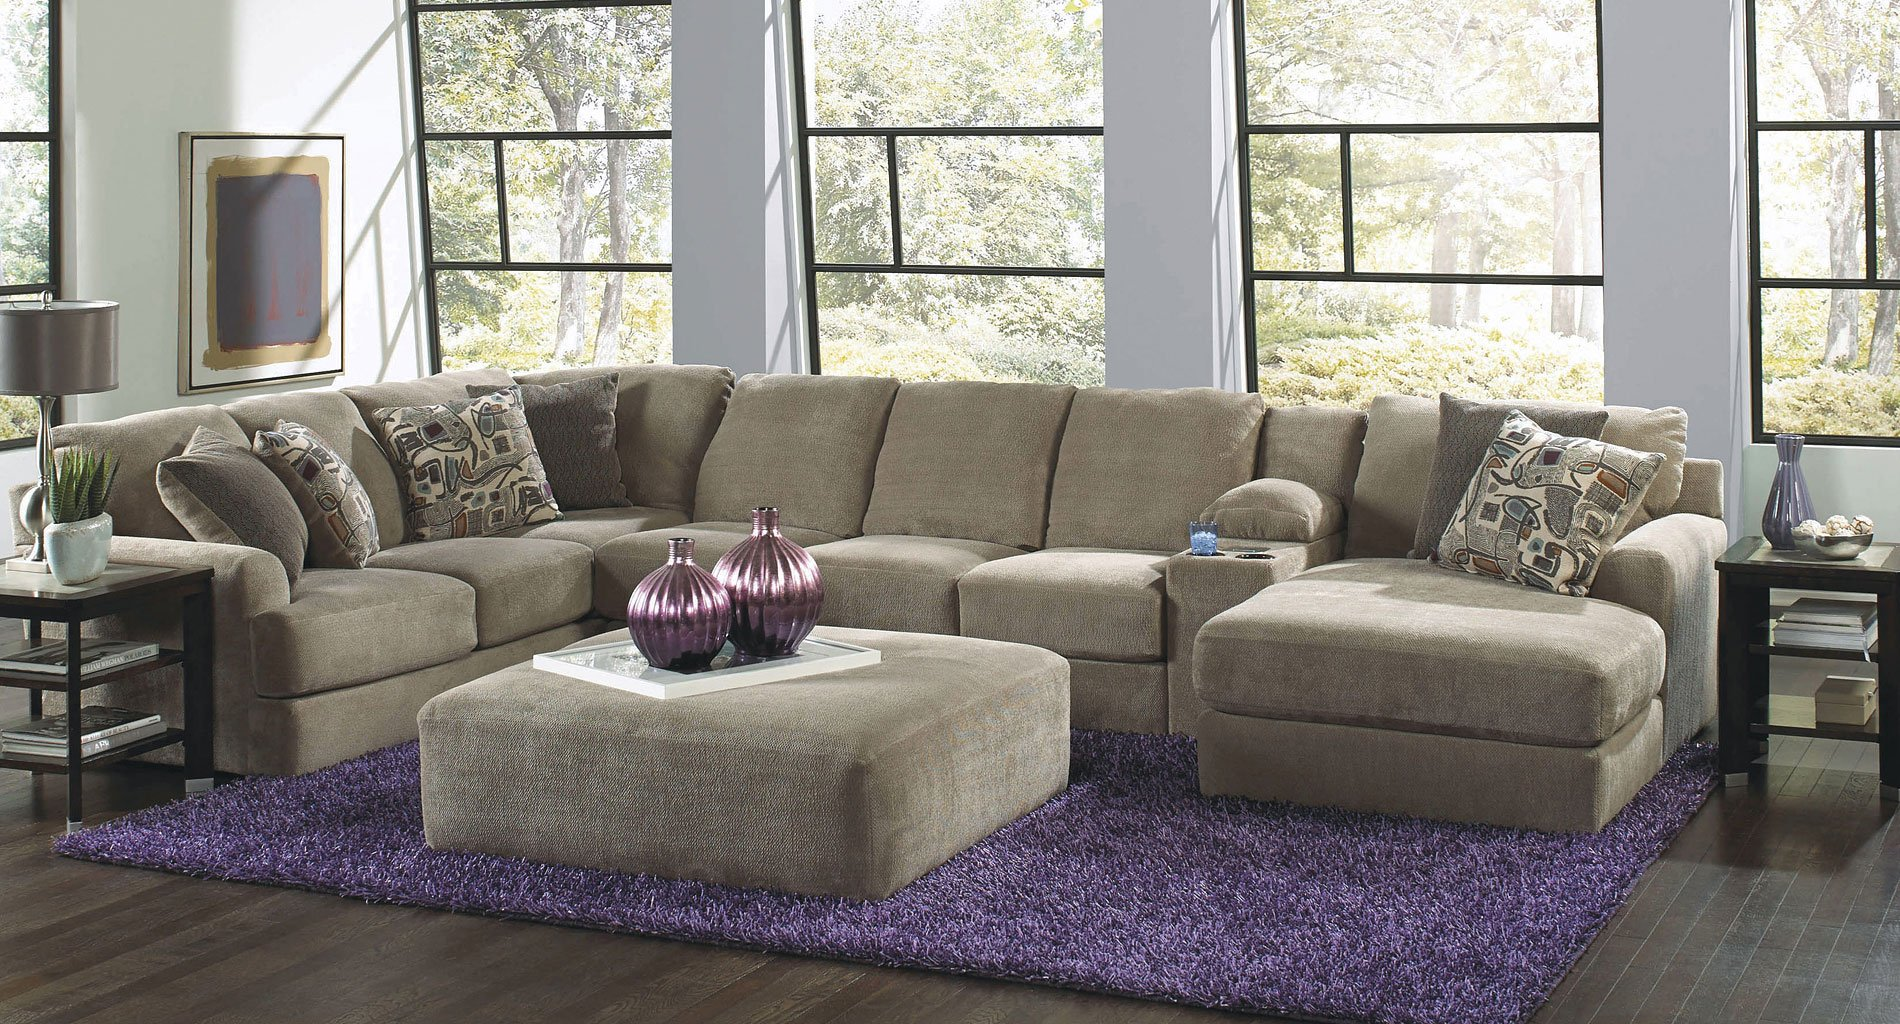 Malibu Modular Sectional w/ Chaise (Taupe) - Sectionals ...